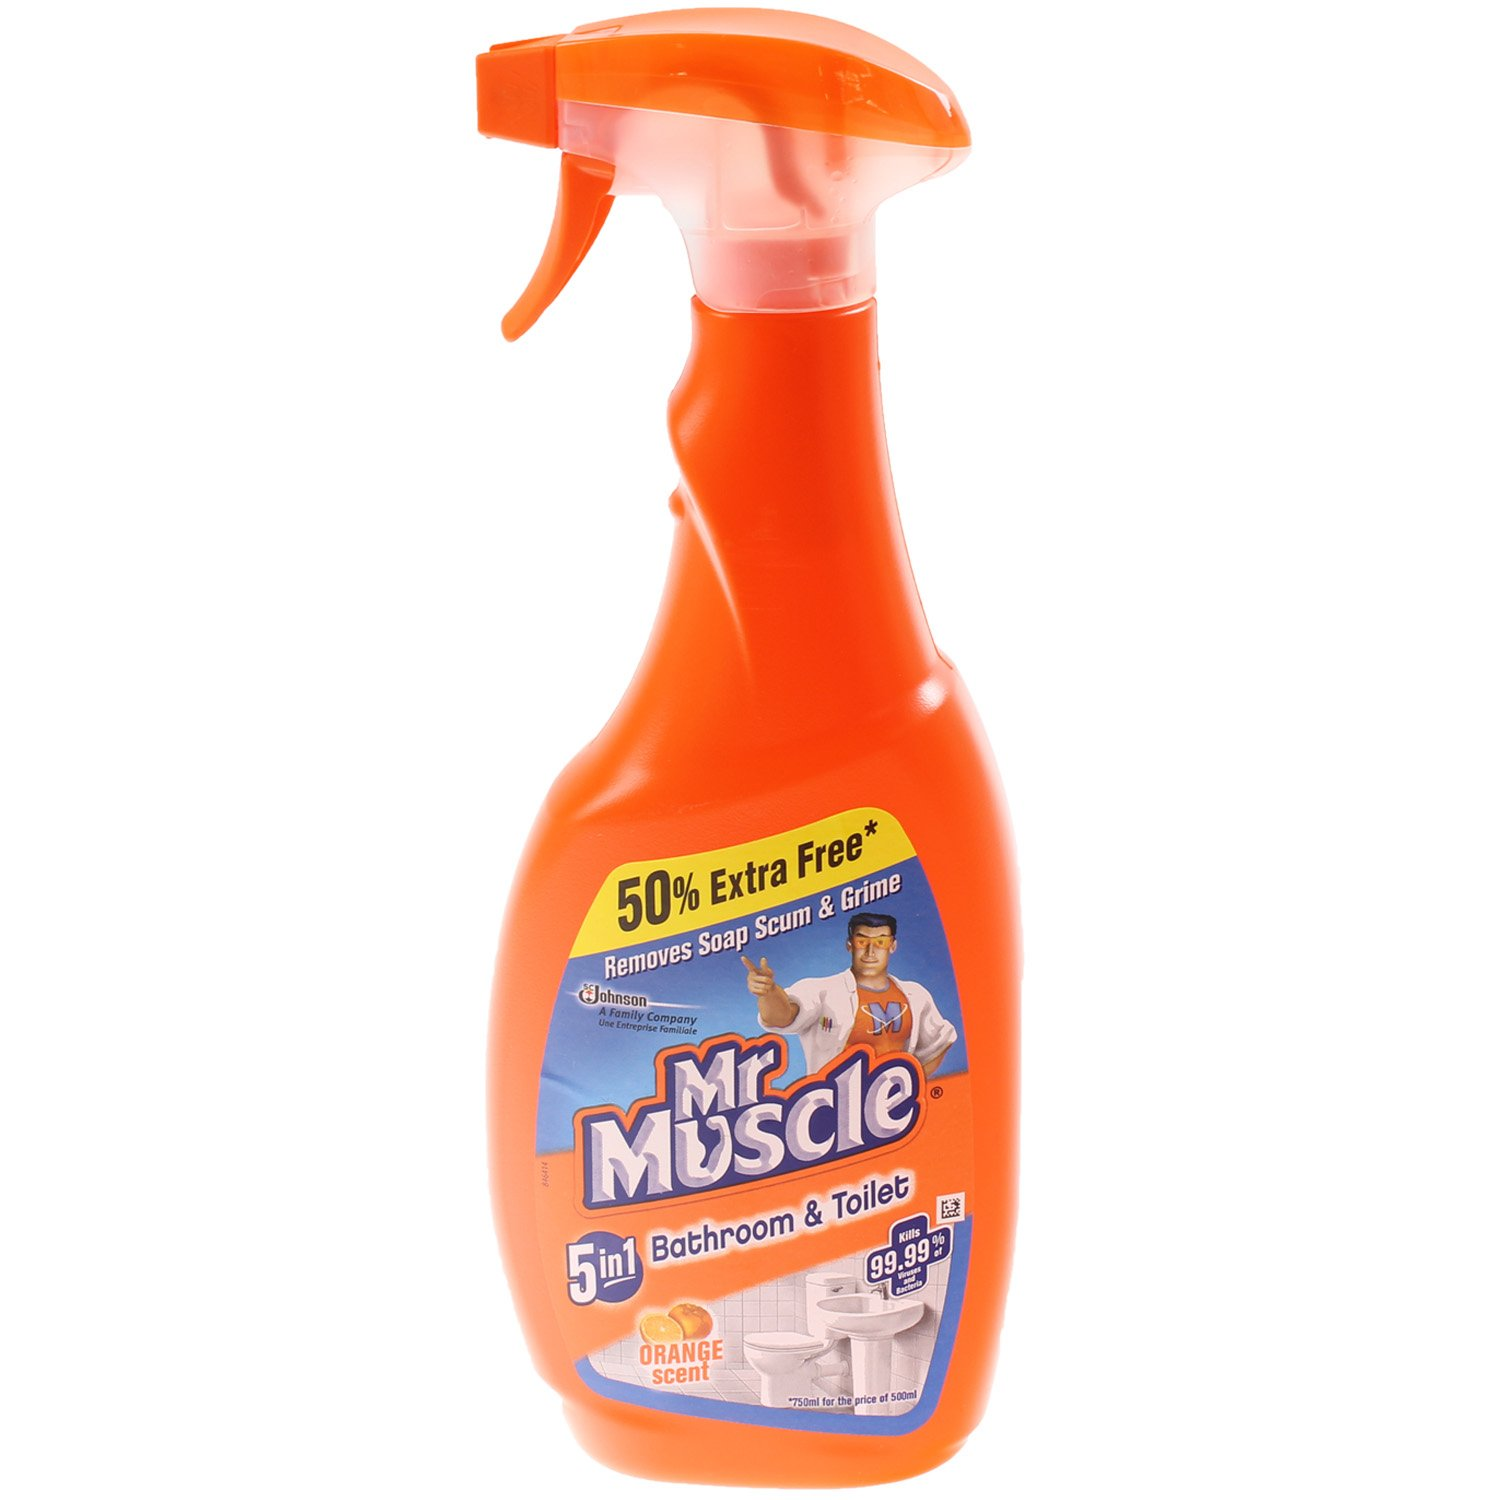 Mr muscle bathroom and toilet cleaner - Mr Muscle Bathroom And Toilet Cleaner 5